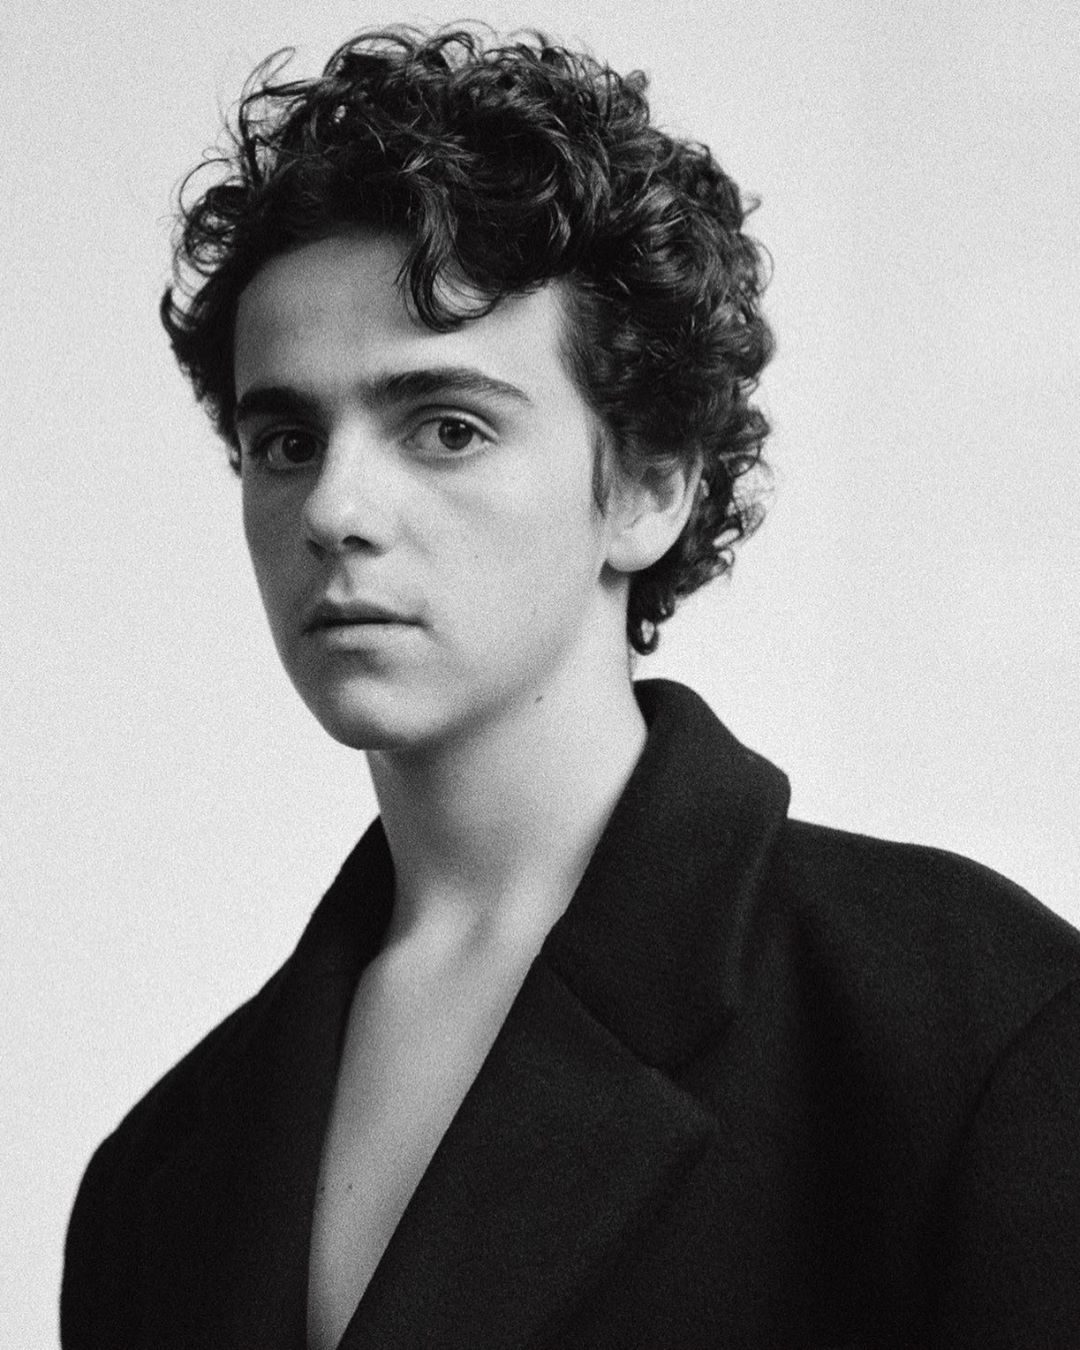 Jack Dylan Grazer Phone Number, FanMail Address and Contact Details